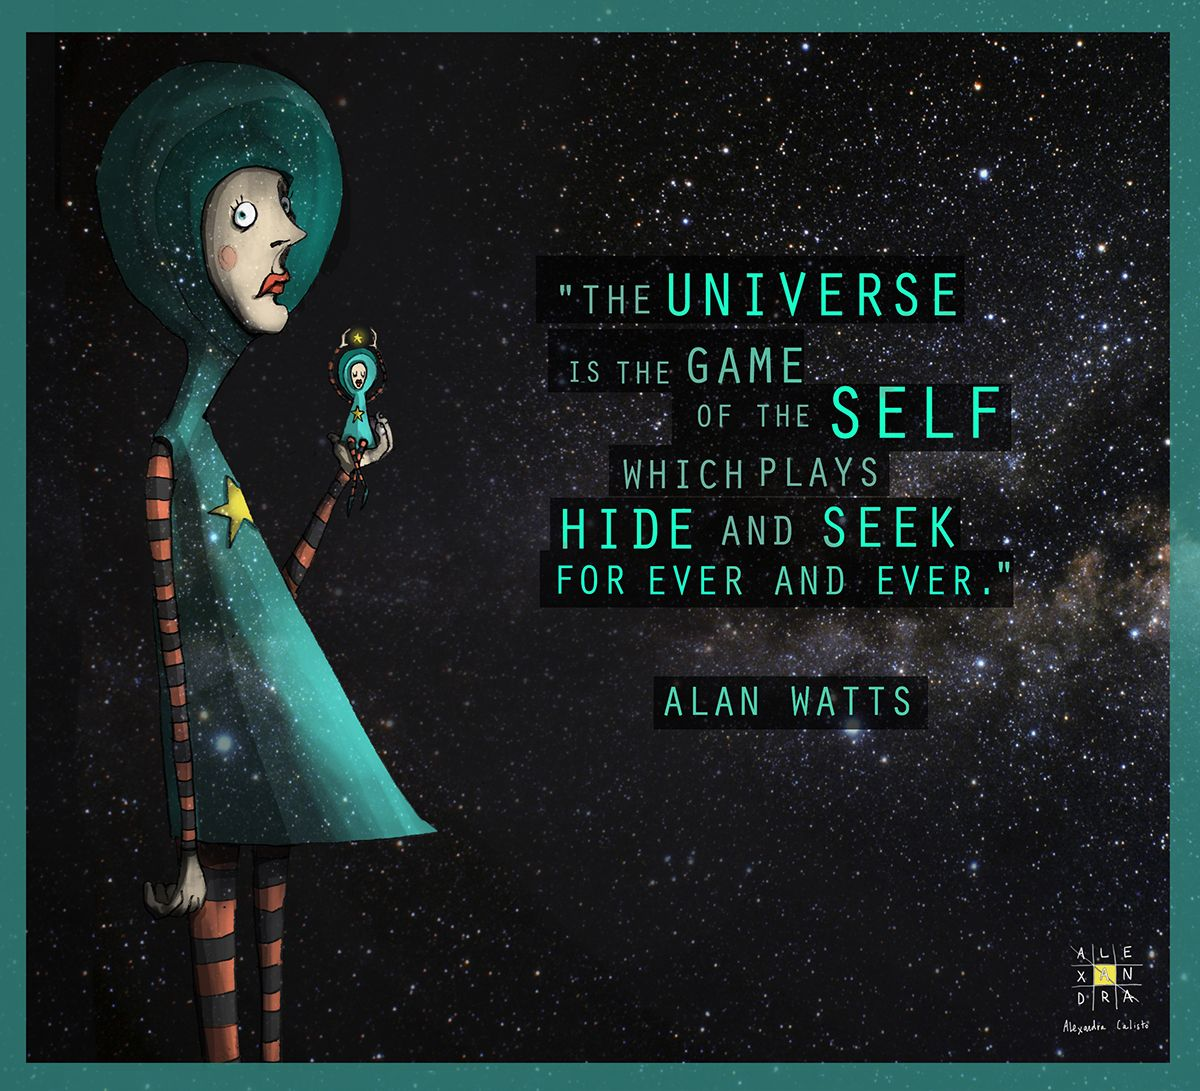 """Alan Watts quote """"The universe is the game of the self ..."""